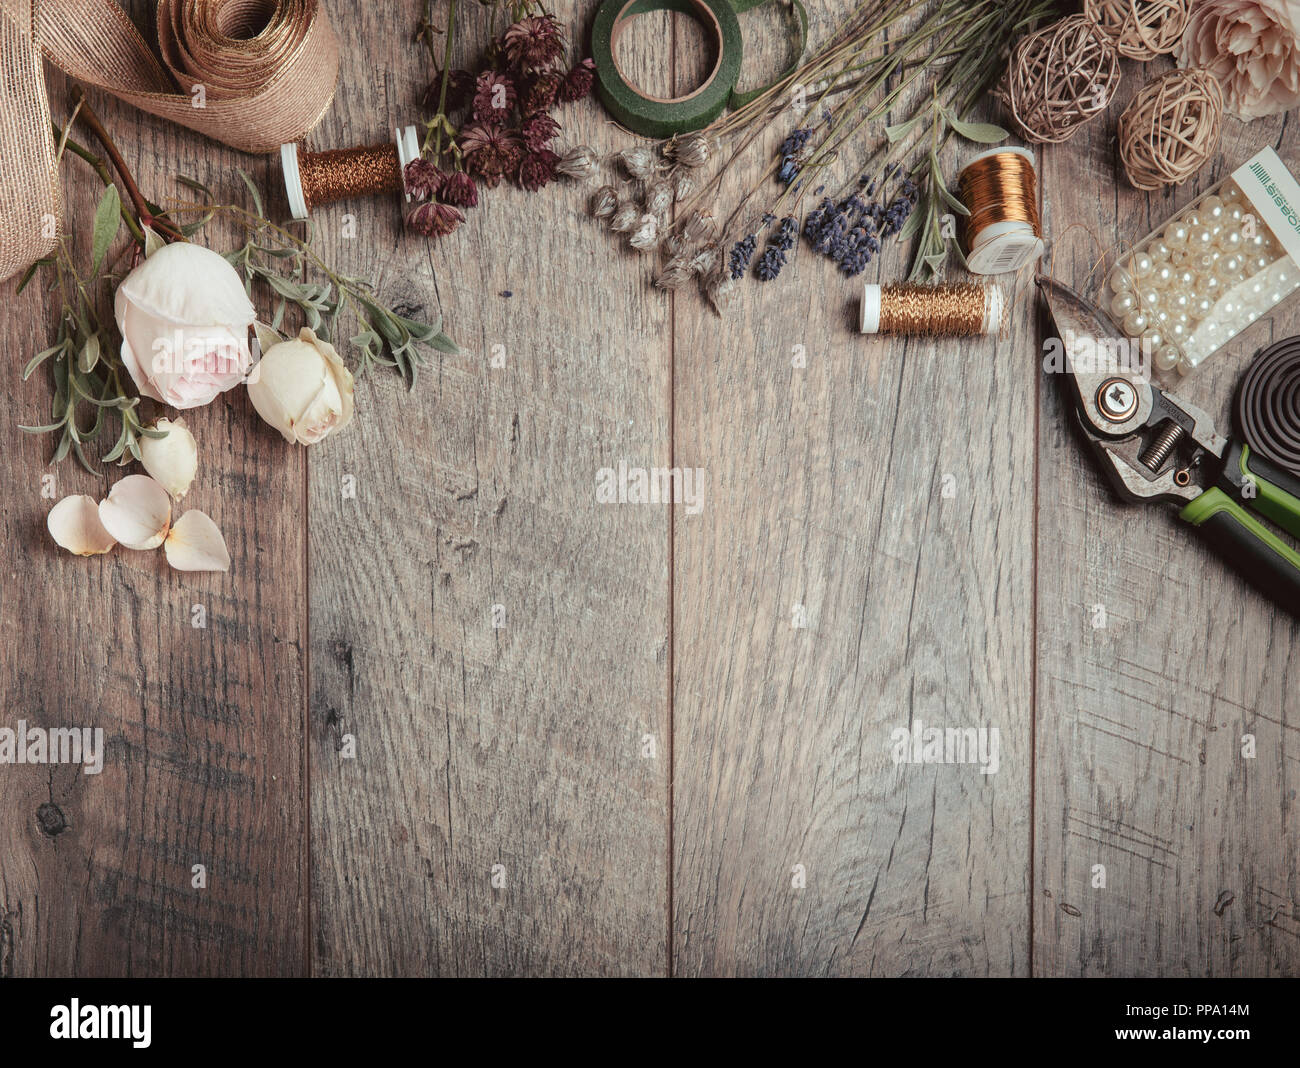 Florist equipment with flowers on wooden background, top view - Stock Image